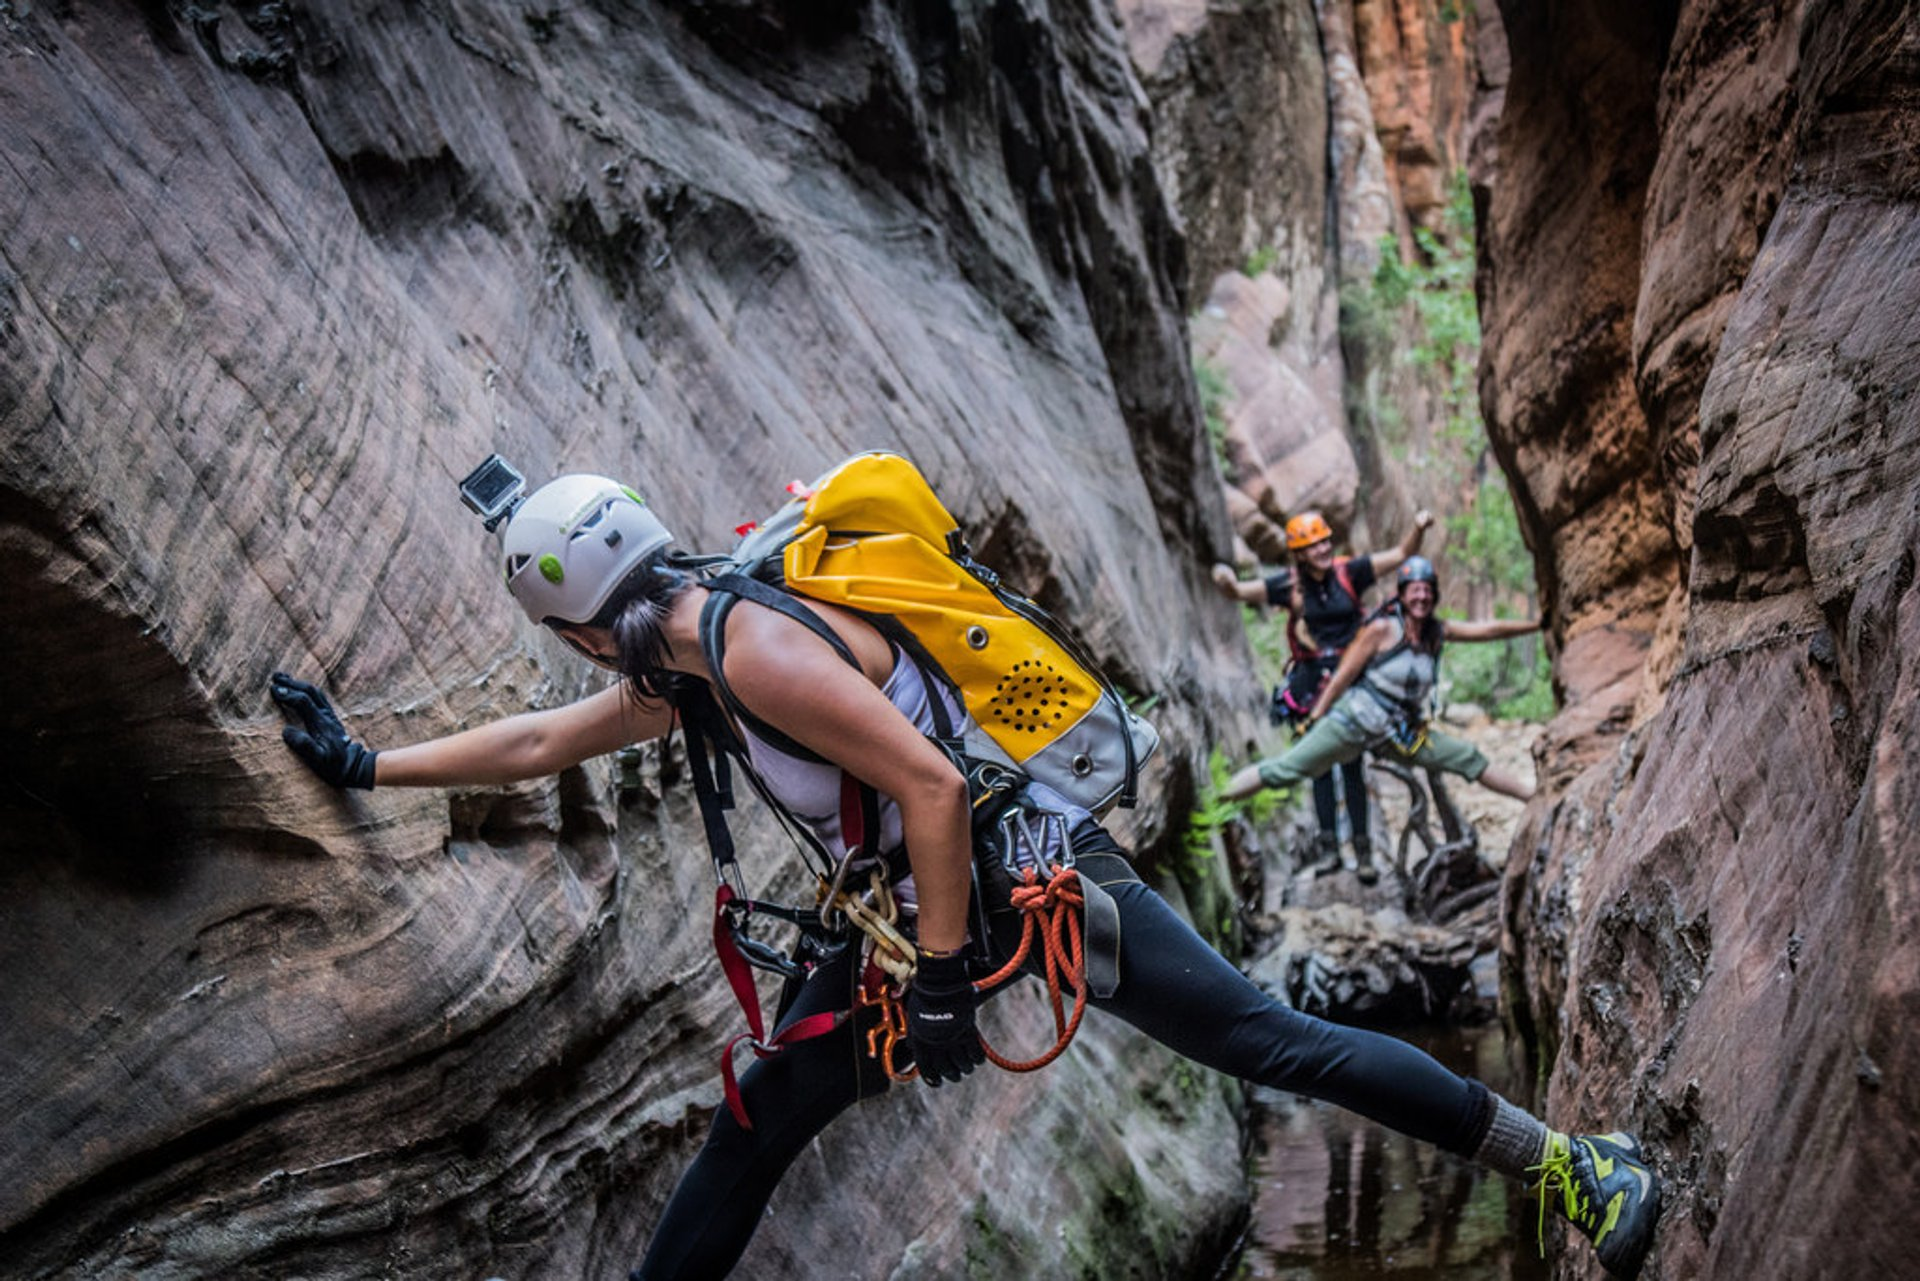 Best time for Canyoneering in Zion National Park in Utah 2020